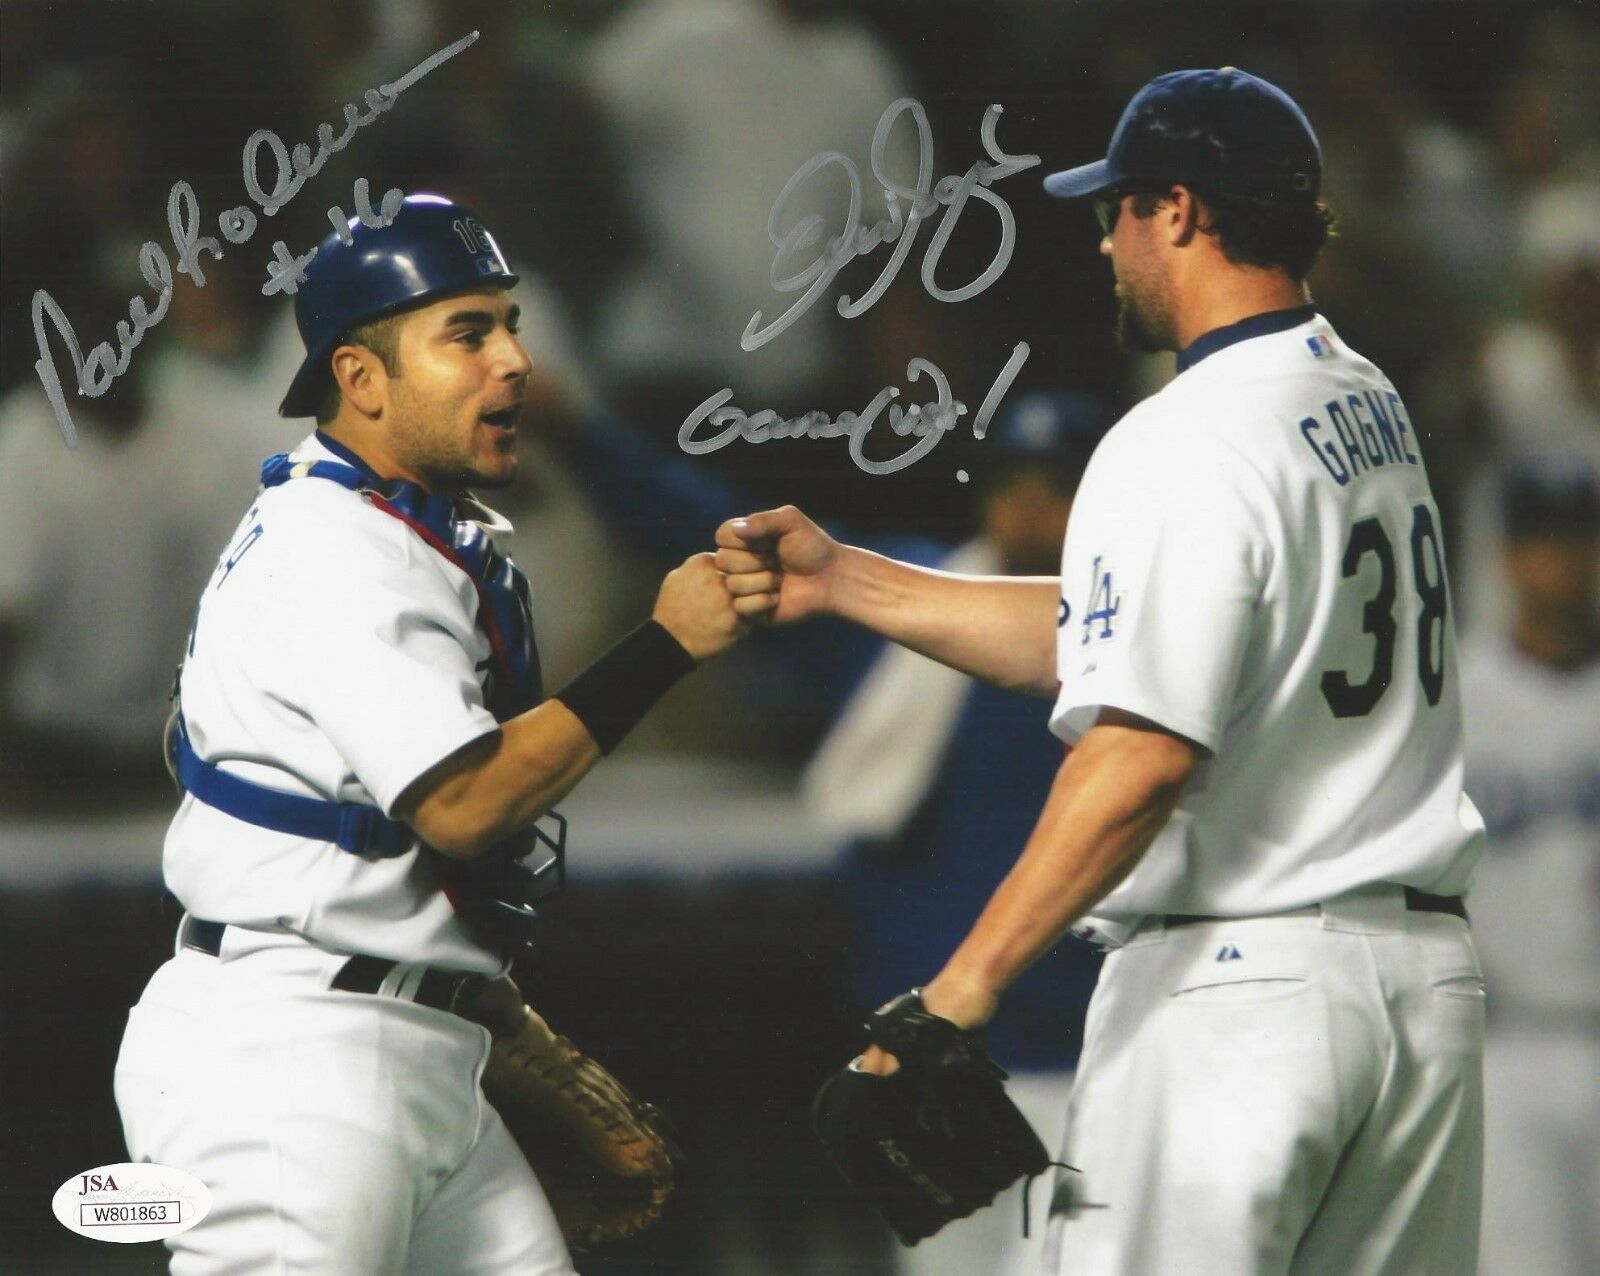 Eric Gagne & Paul Loduca Signed Los Angeles Dodgers 8X10 Photo JSA# W801863